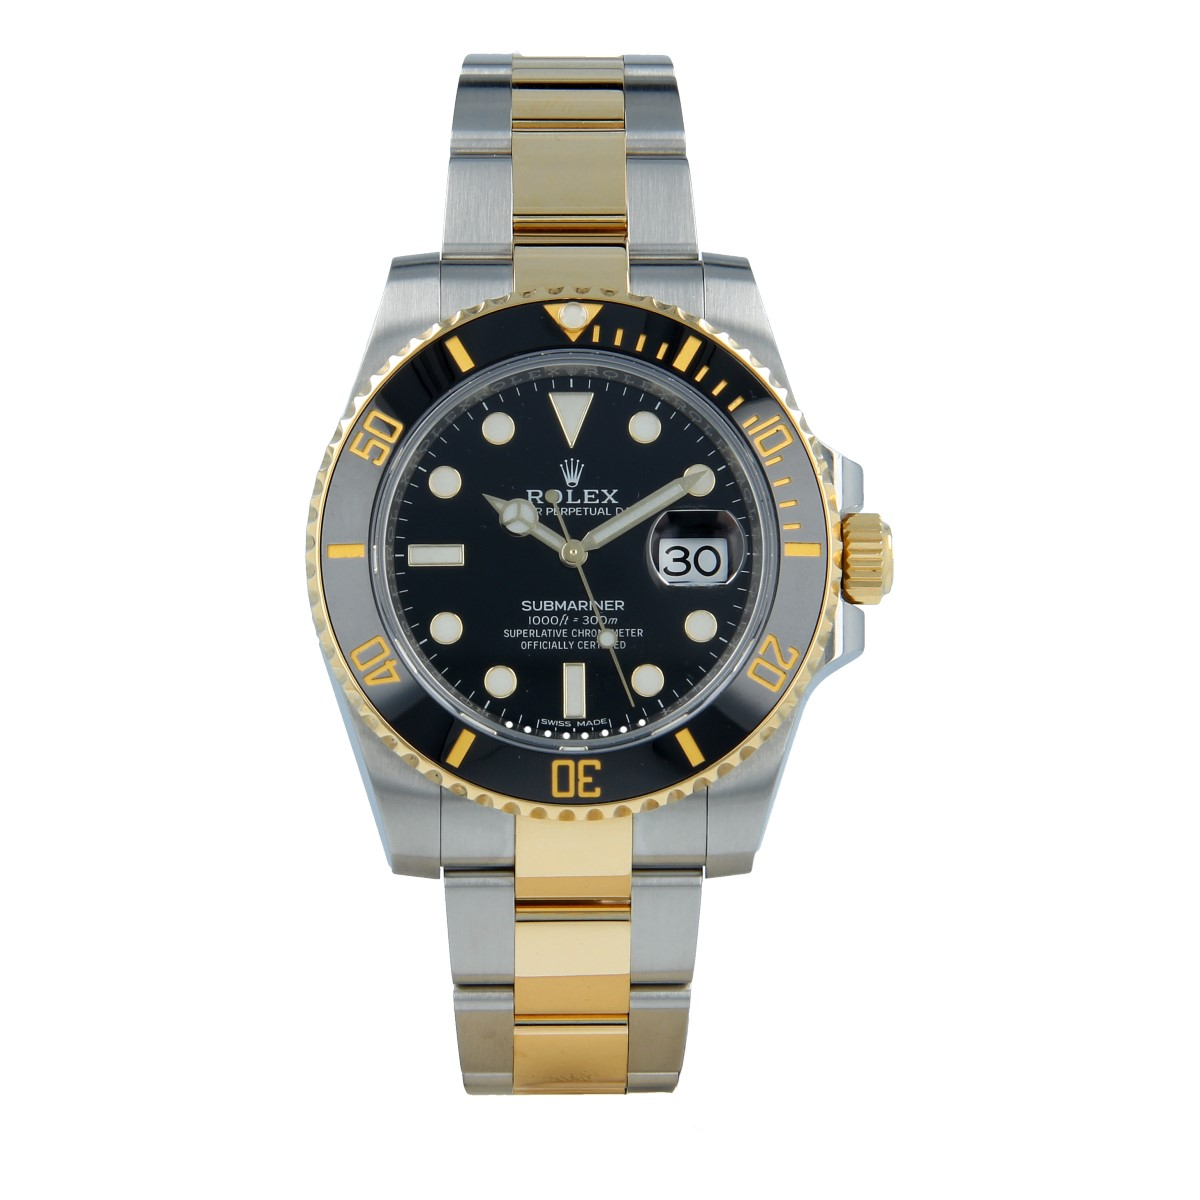 Rolex Submariner Mixto 116613LN Full Set | Buy second-hand Rolex watch